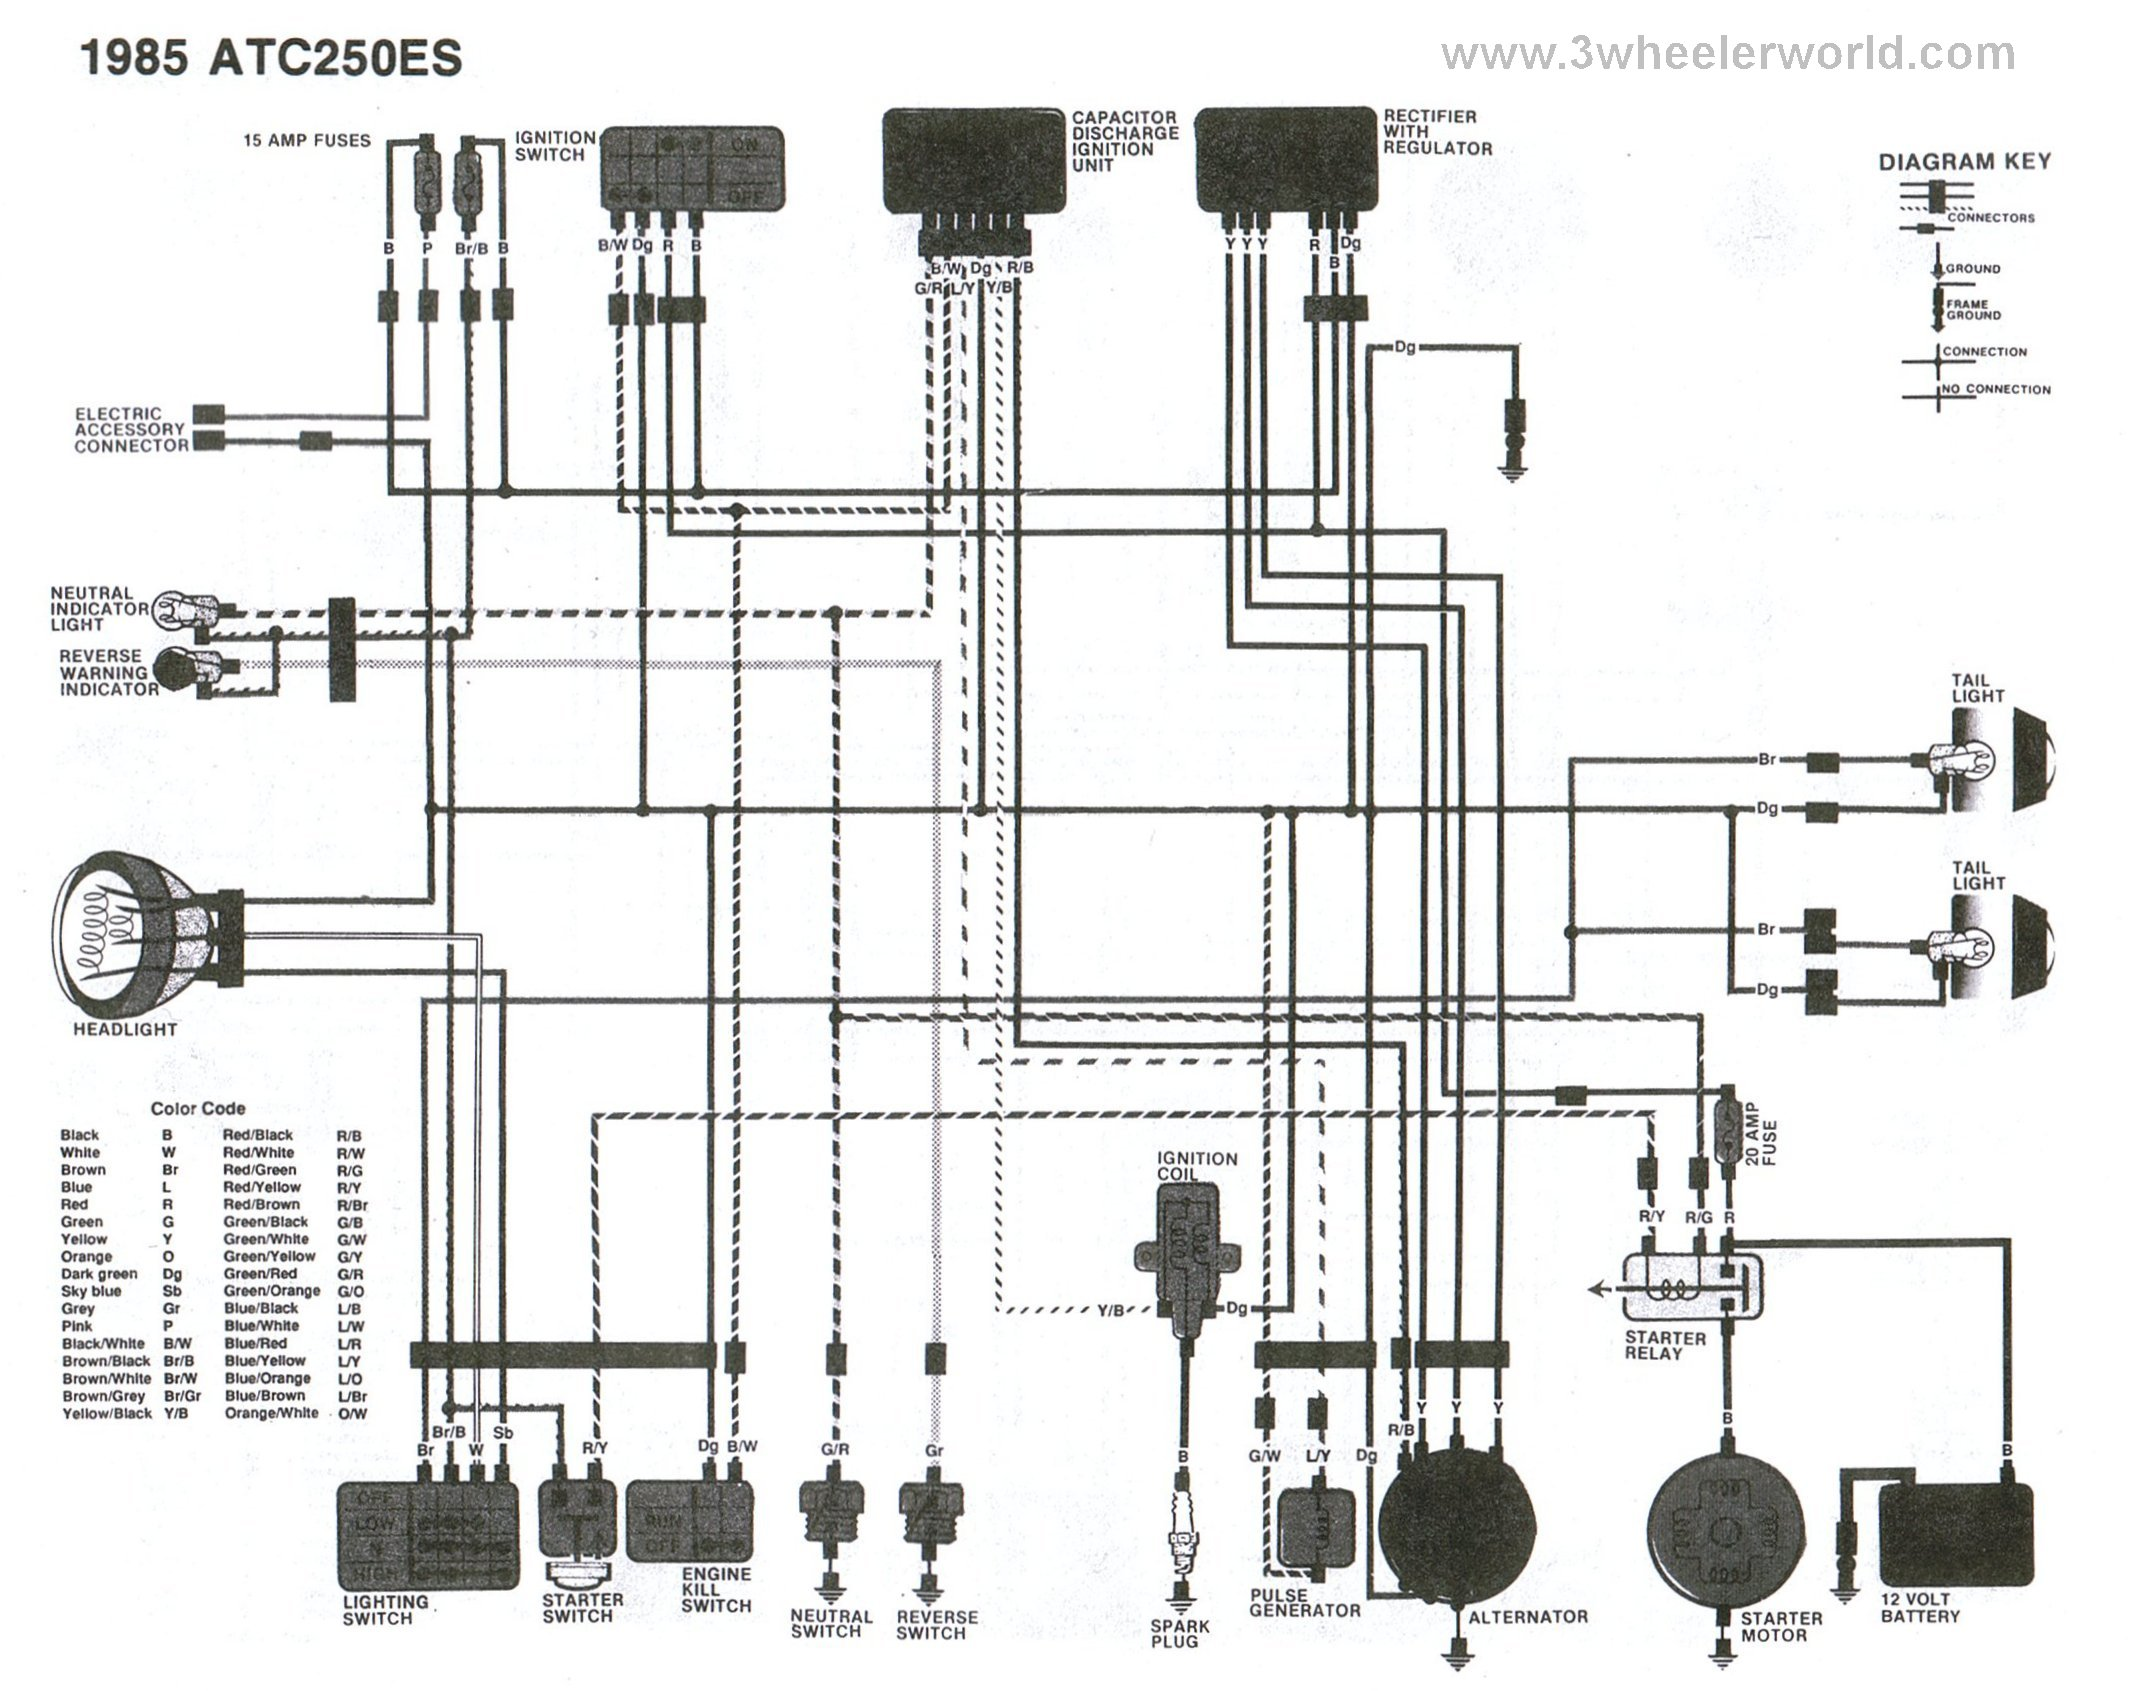 honda 200es wiring diagram wiring diagram schematics rh thyl co uk 1985 honda  trx 250 wiring diagram honda trx 250ex wiring diagram